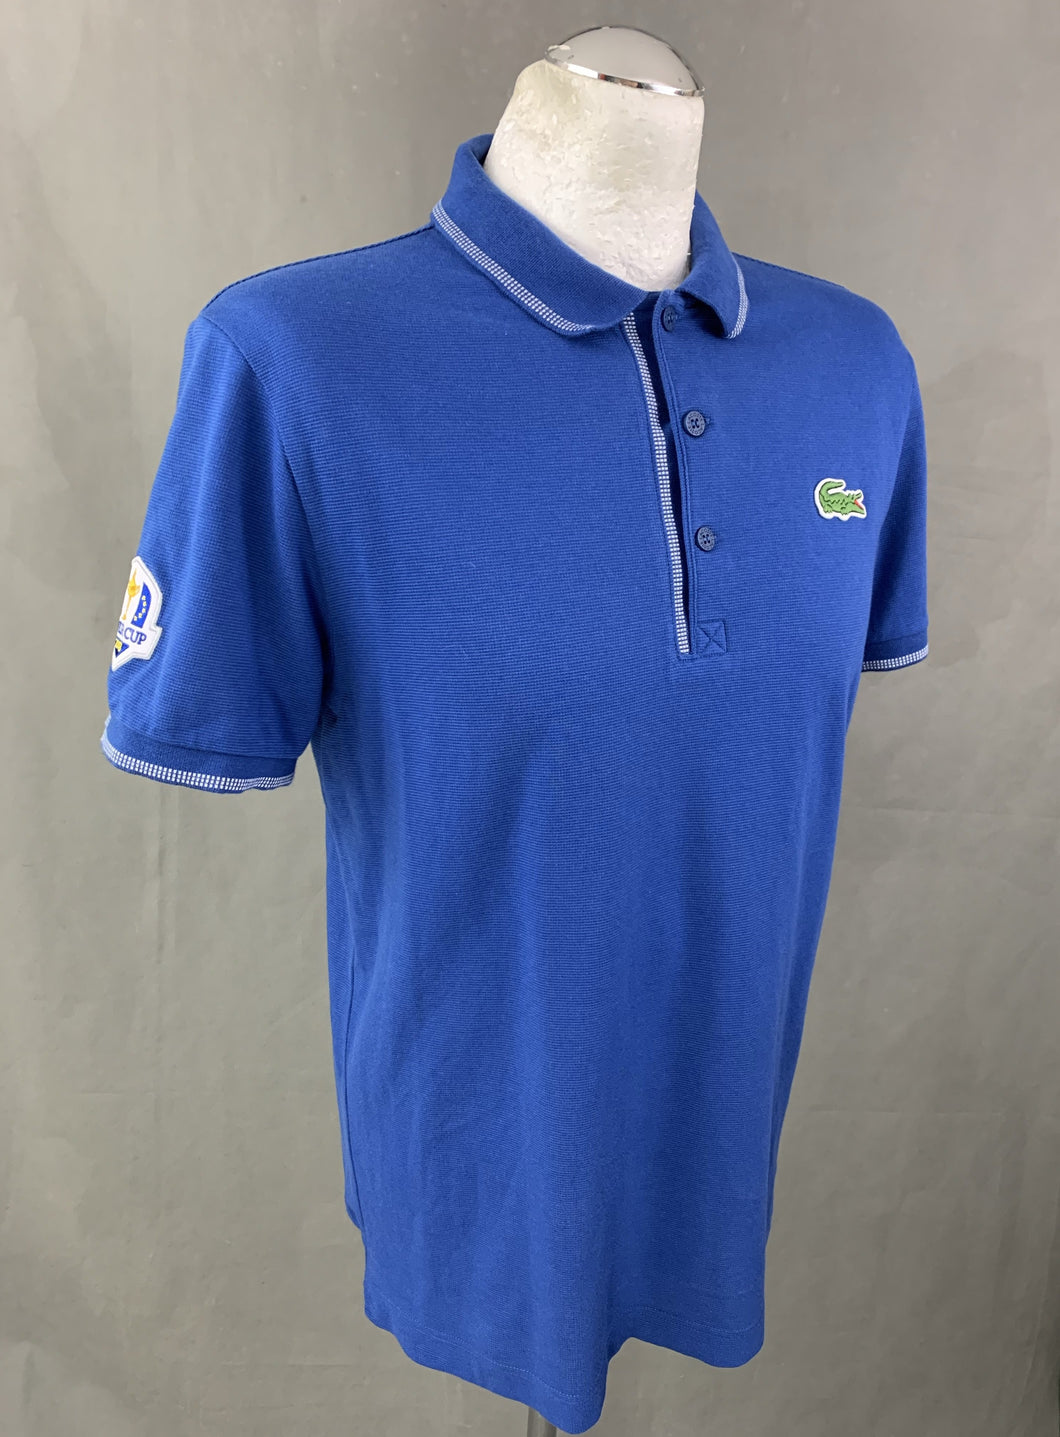 LACOSTE Mens RYDER CUP Blue POLO SHIRT Size 4 - Medium M